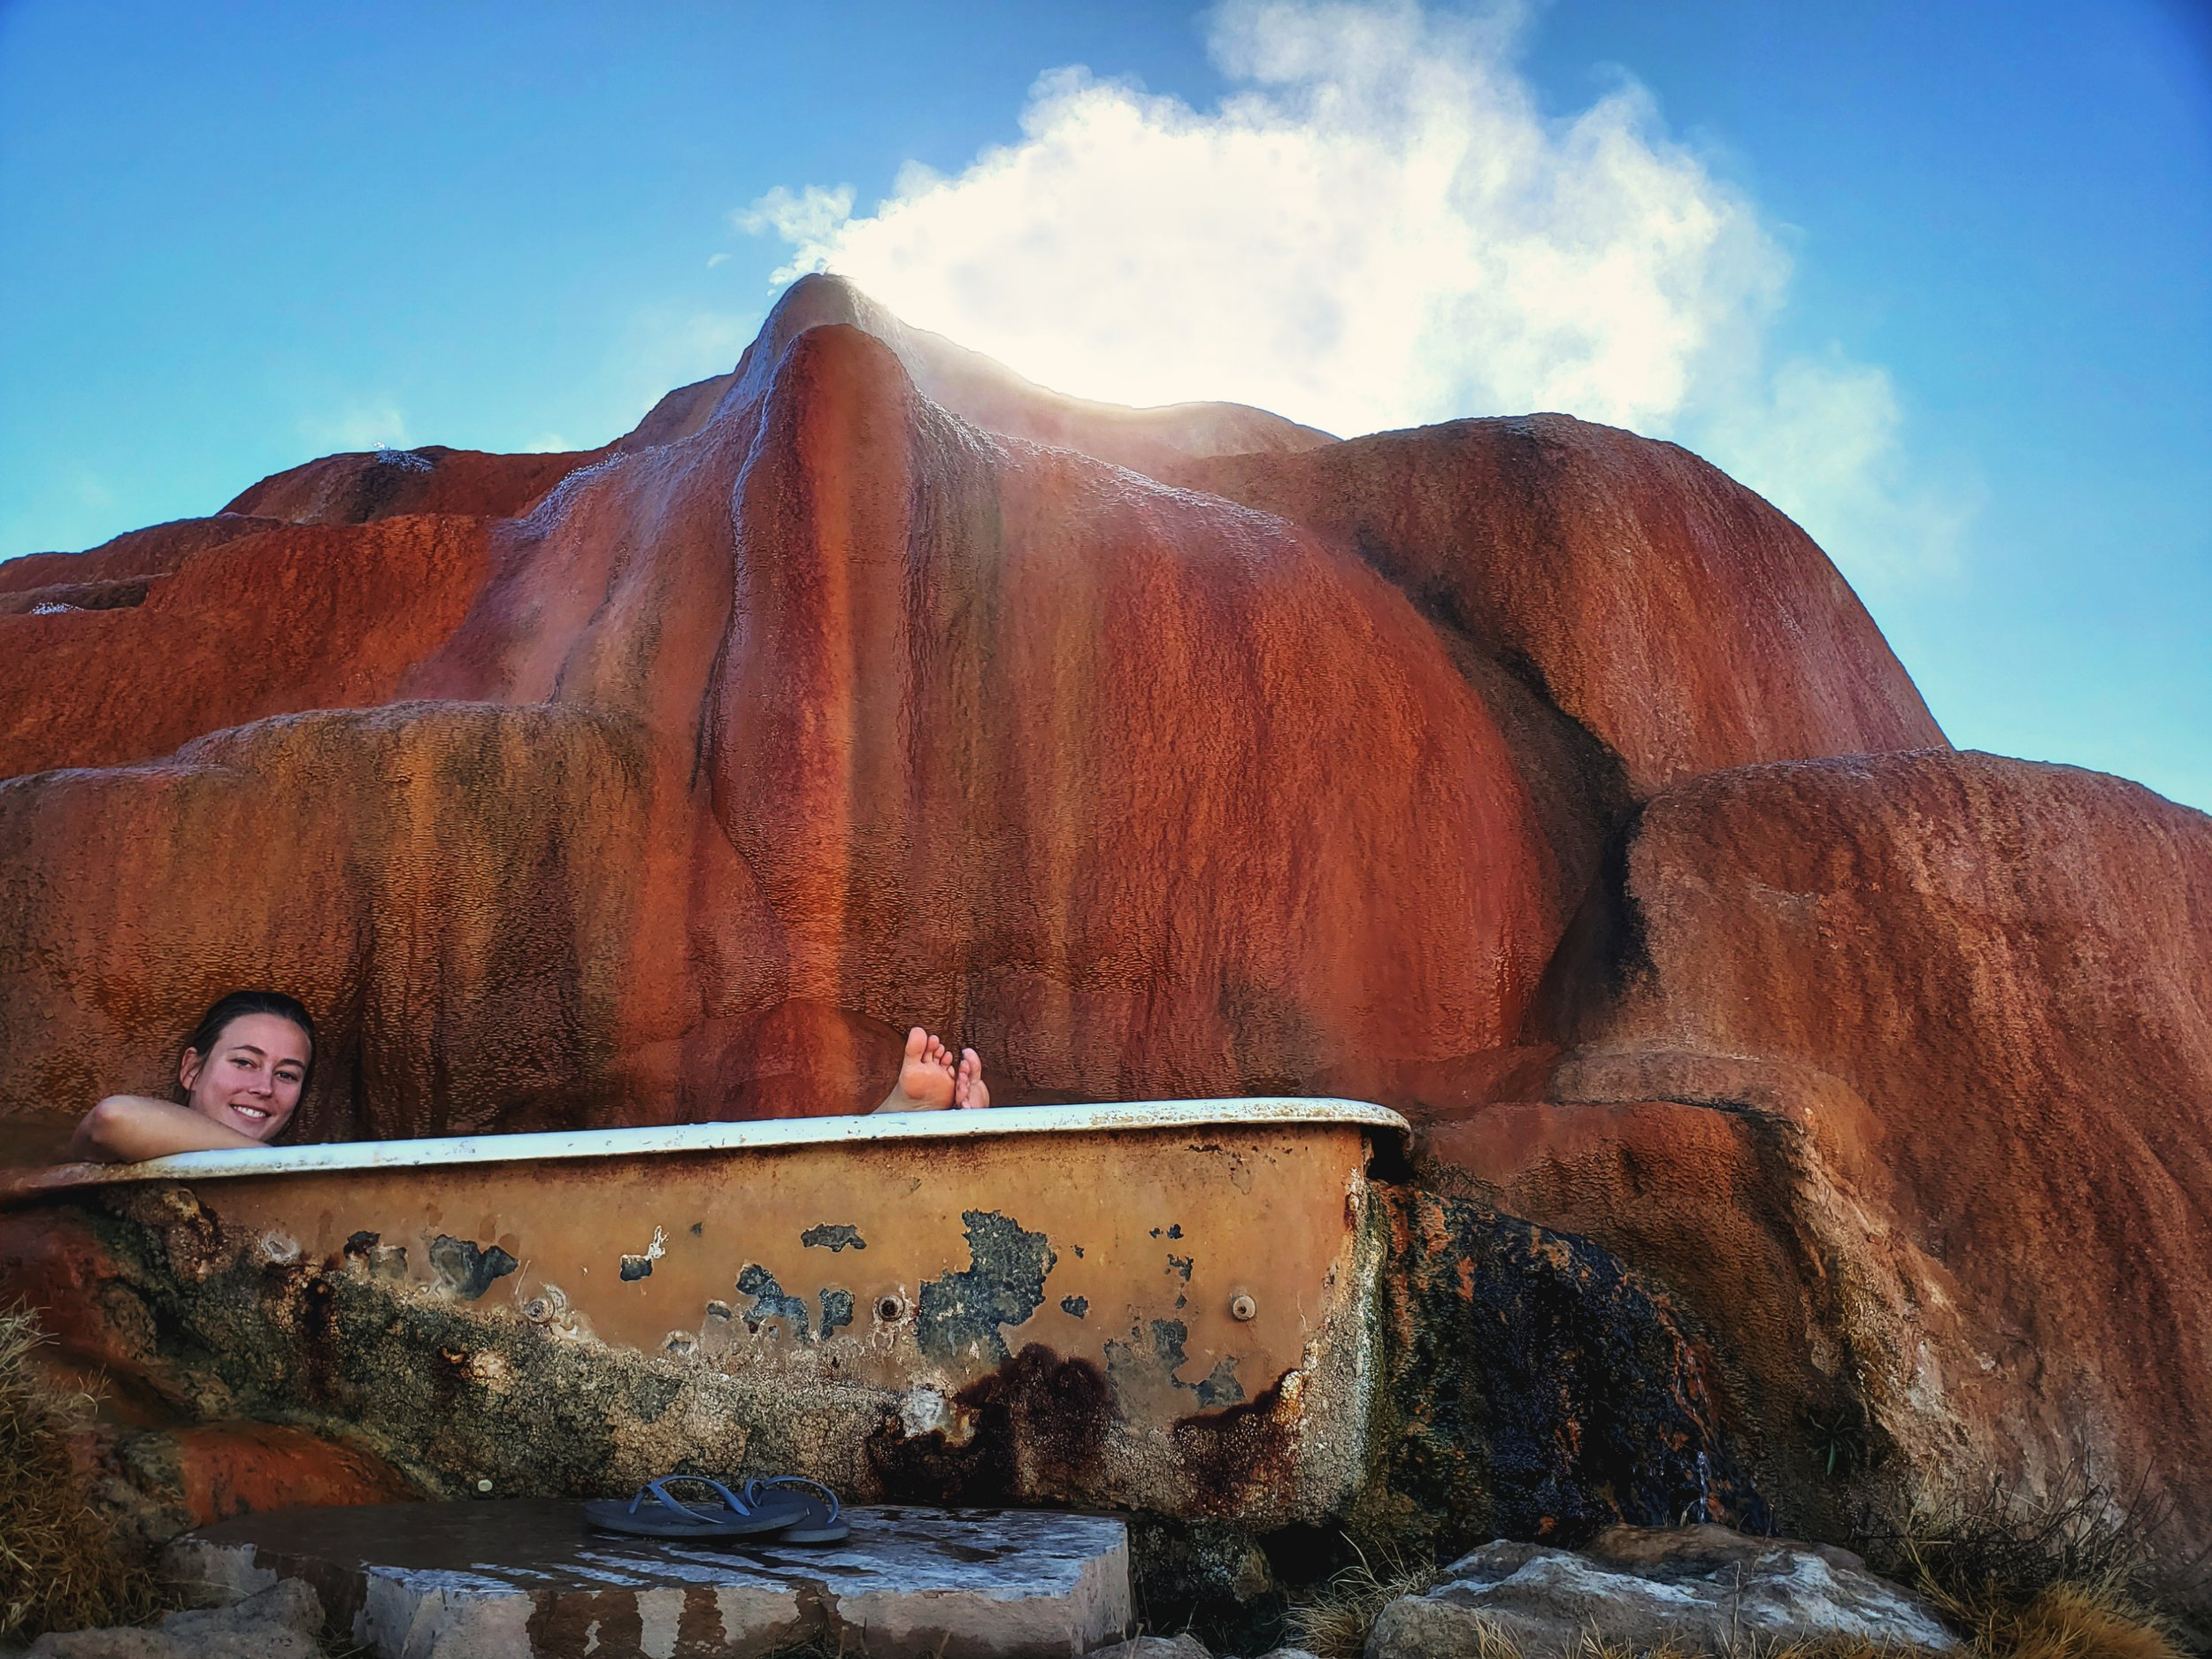 In the cold air, the mineral dome was steaming like a volcano.